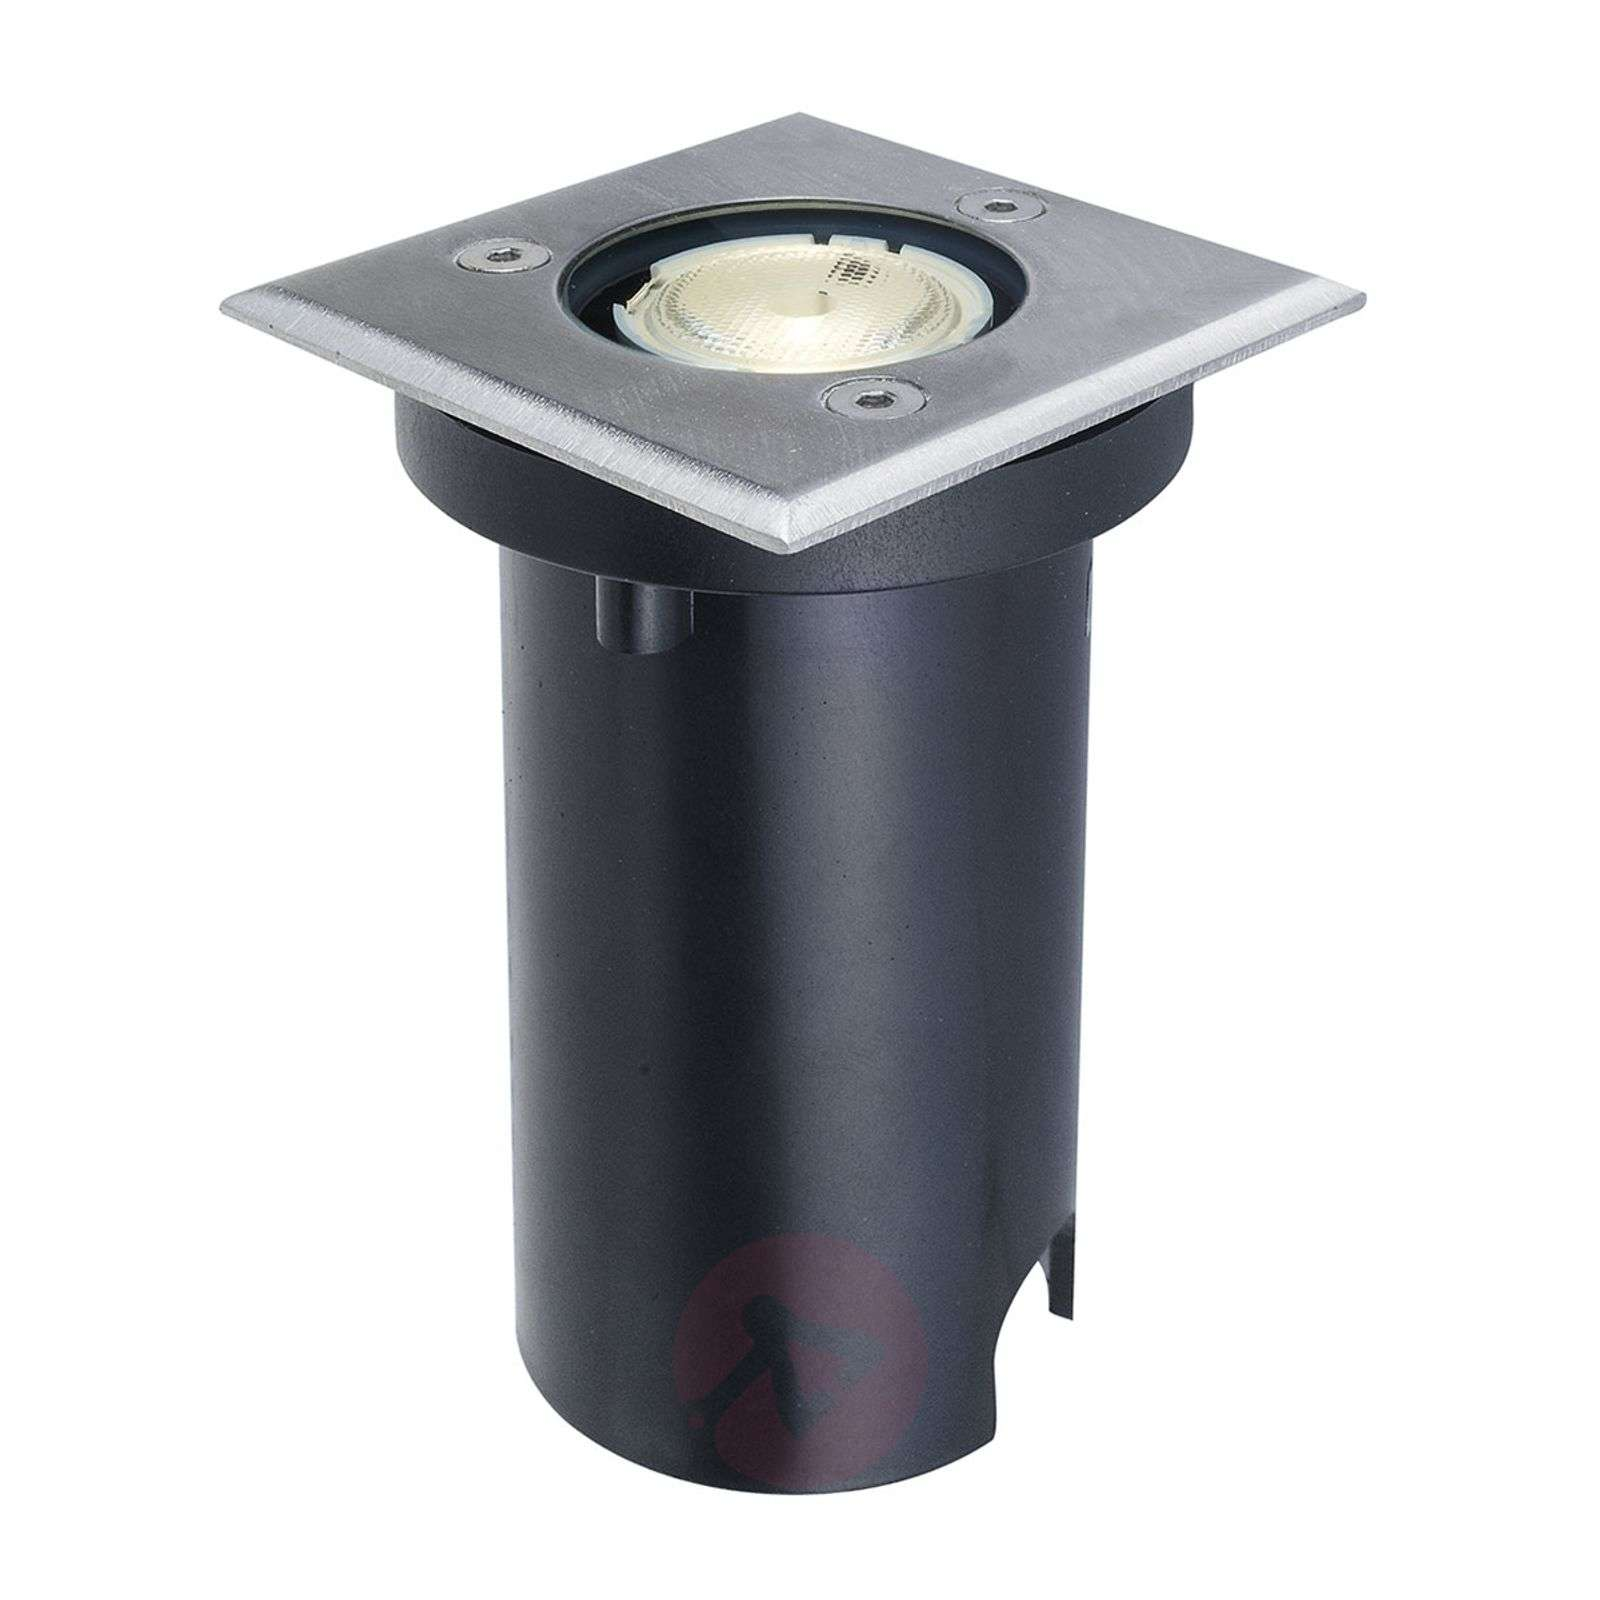 Kenan-LED-maavalaisin, IP65, 49 lumenia-9616036-01